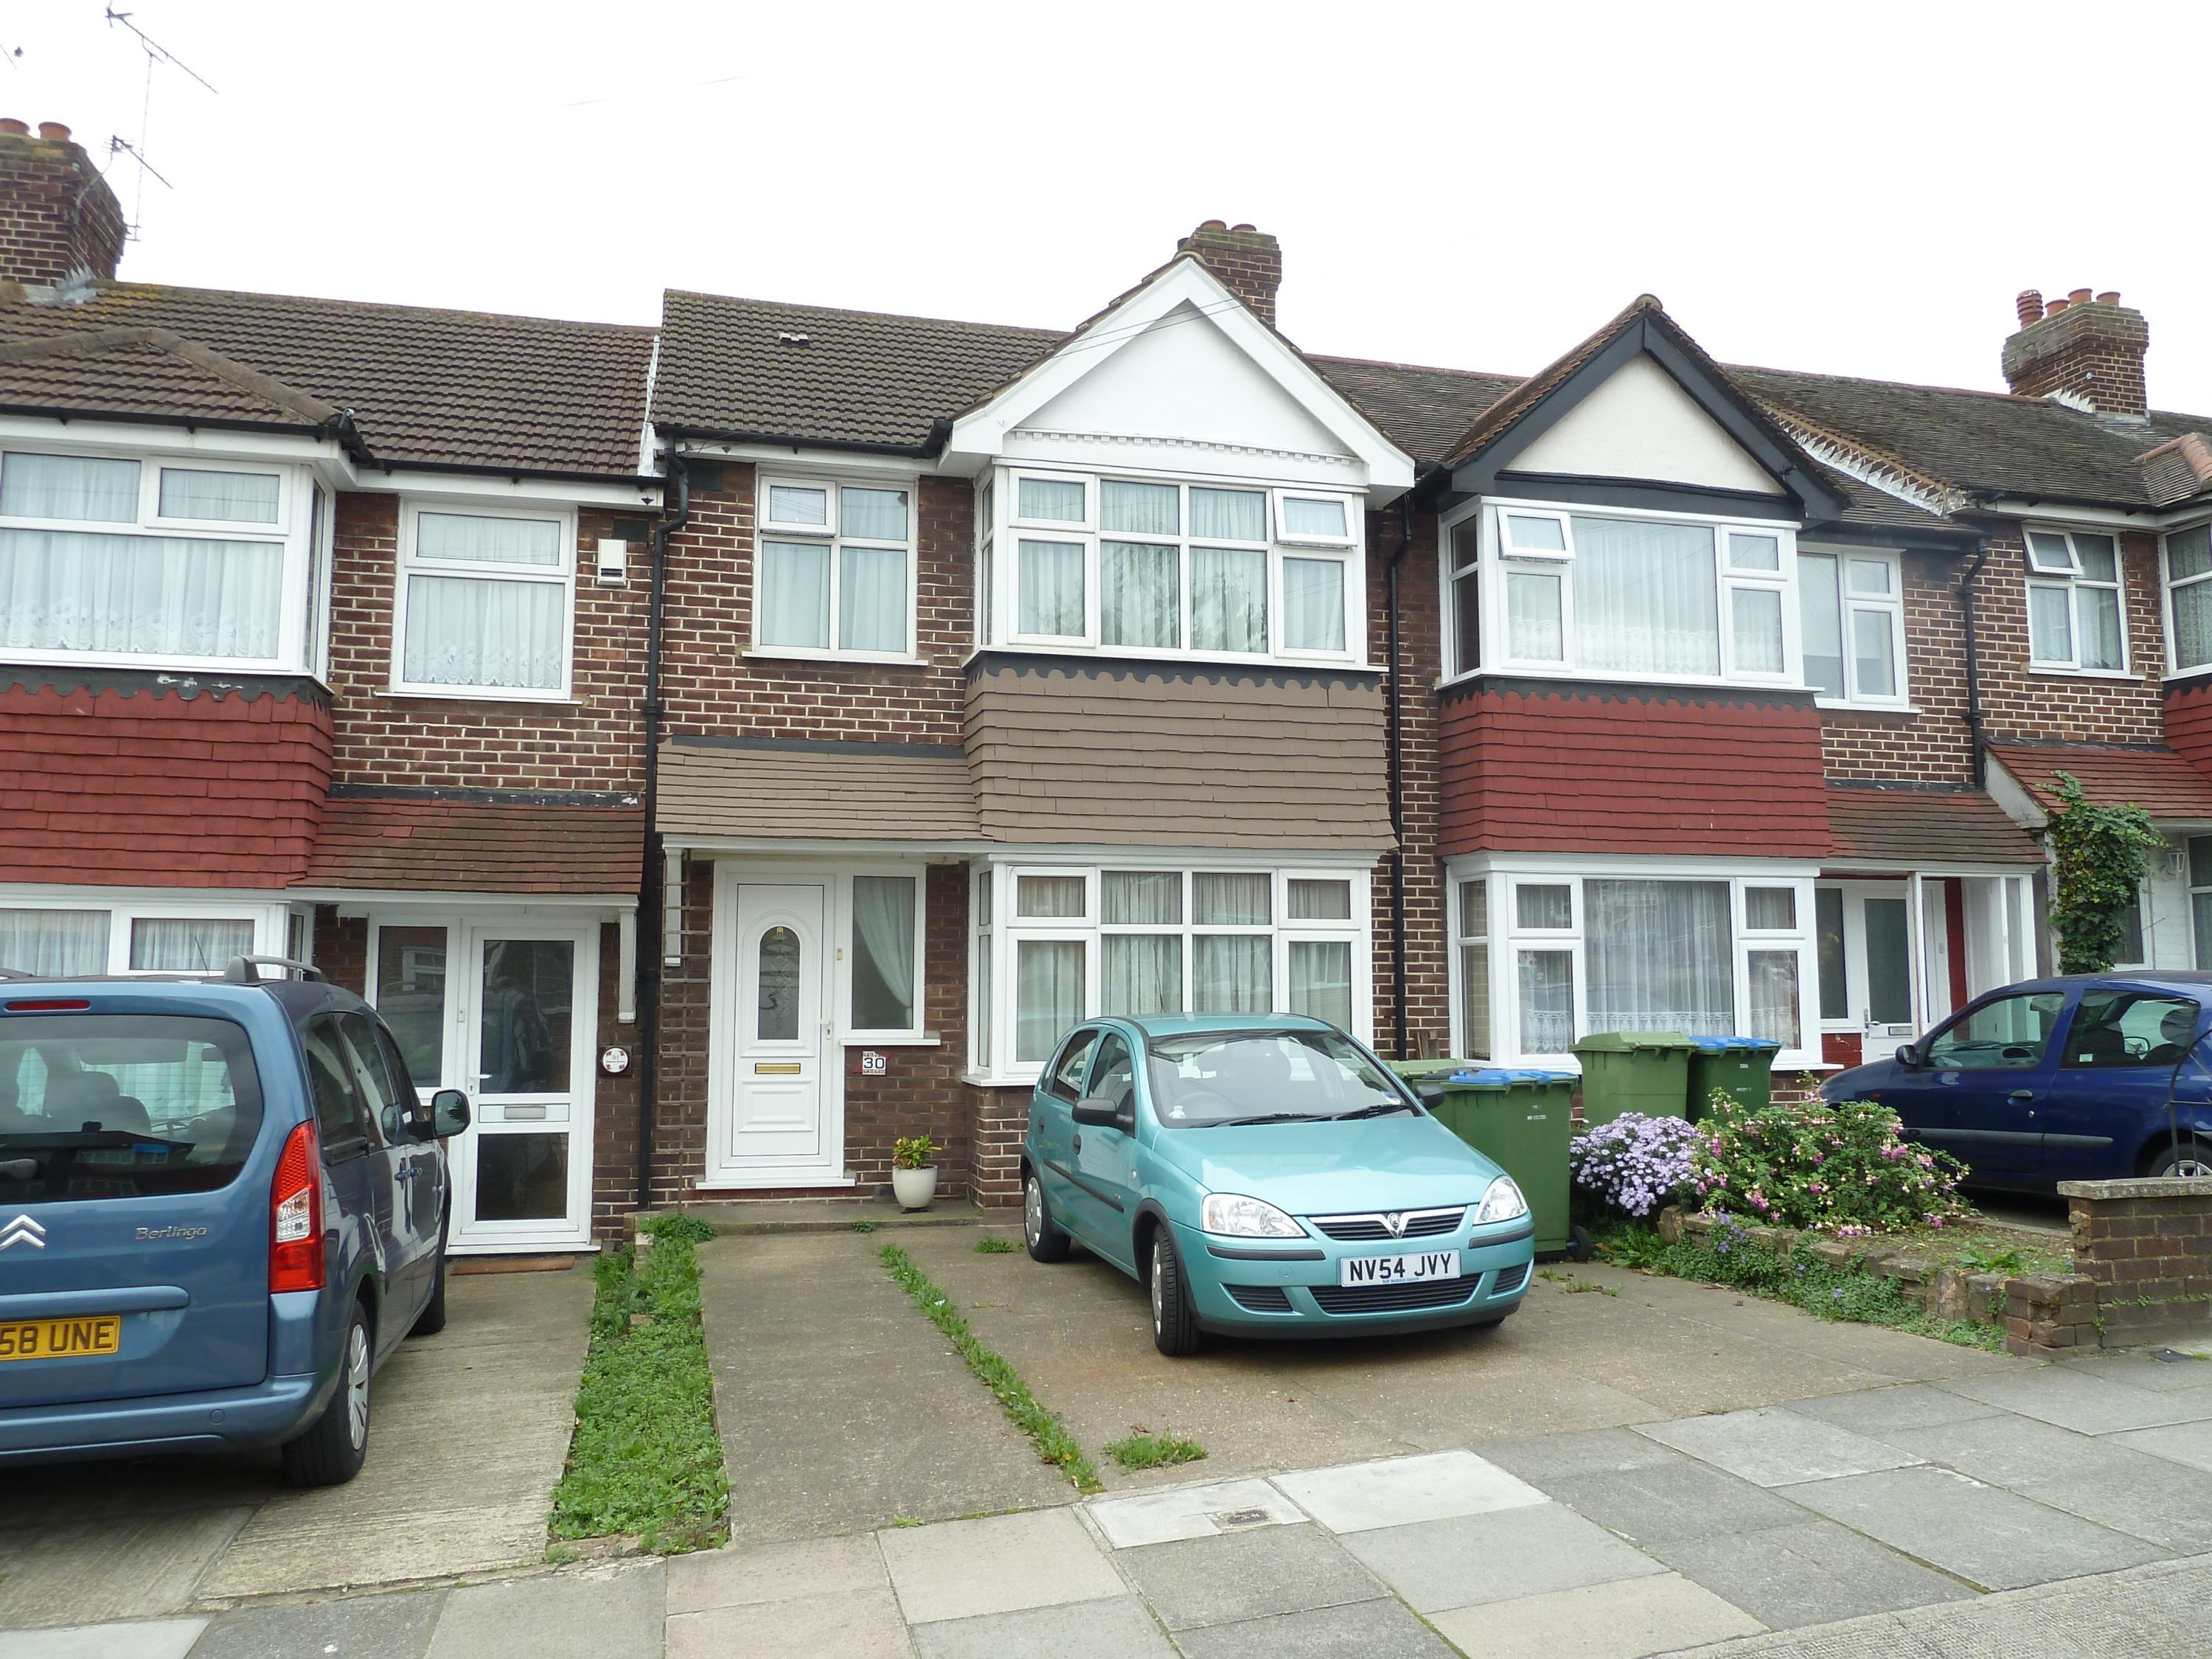 Edison Grove , Plumstead, London, SE18 2DN